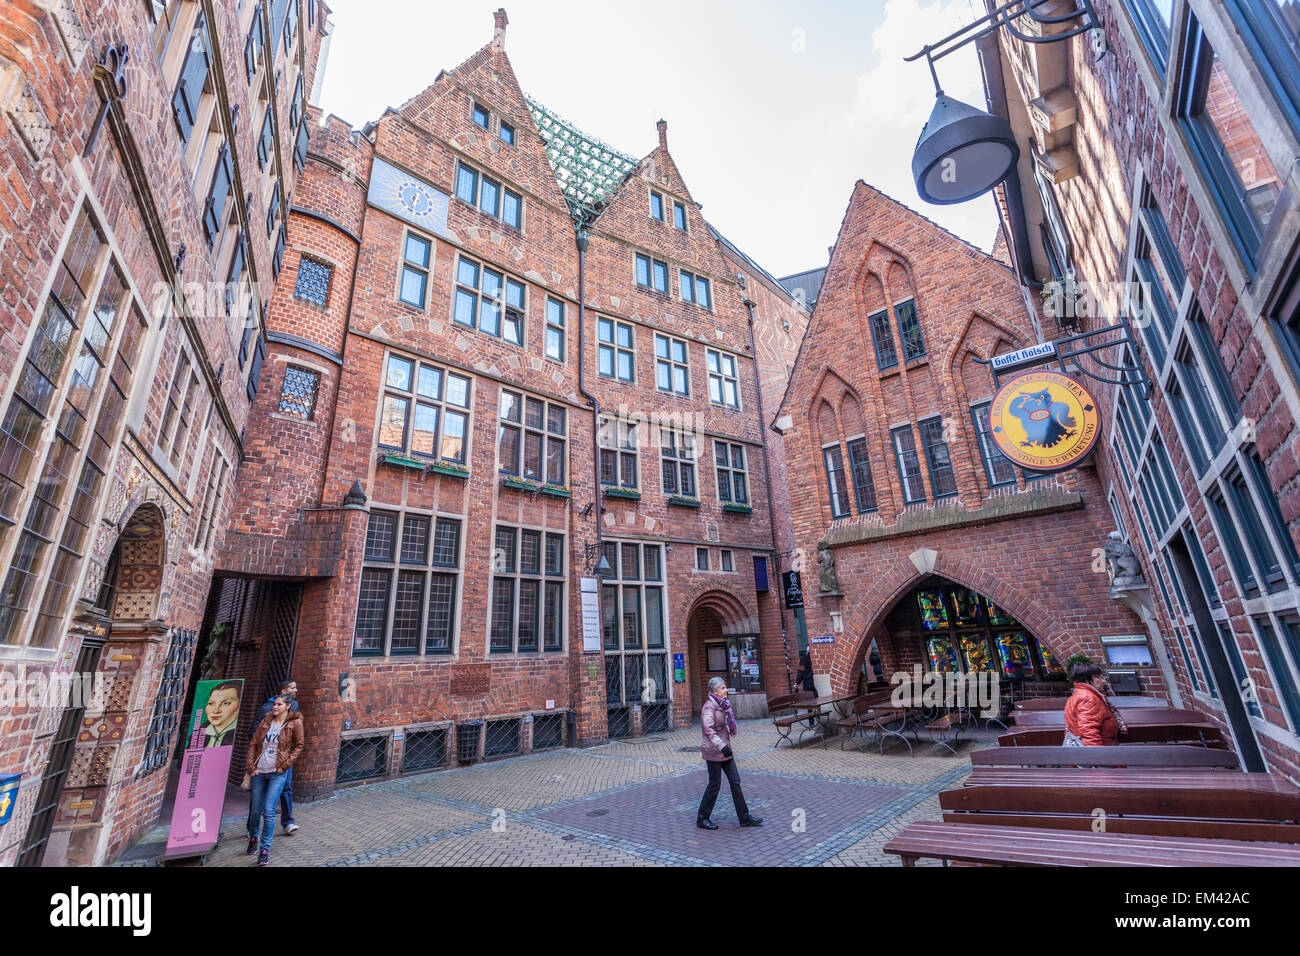 Brick buildings in historic Boettcher Street in the old town in Bremen, Germany Stock Photo